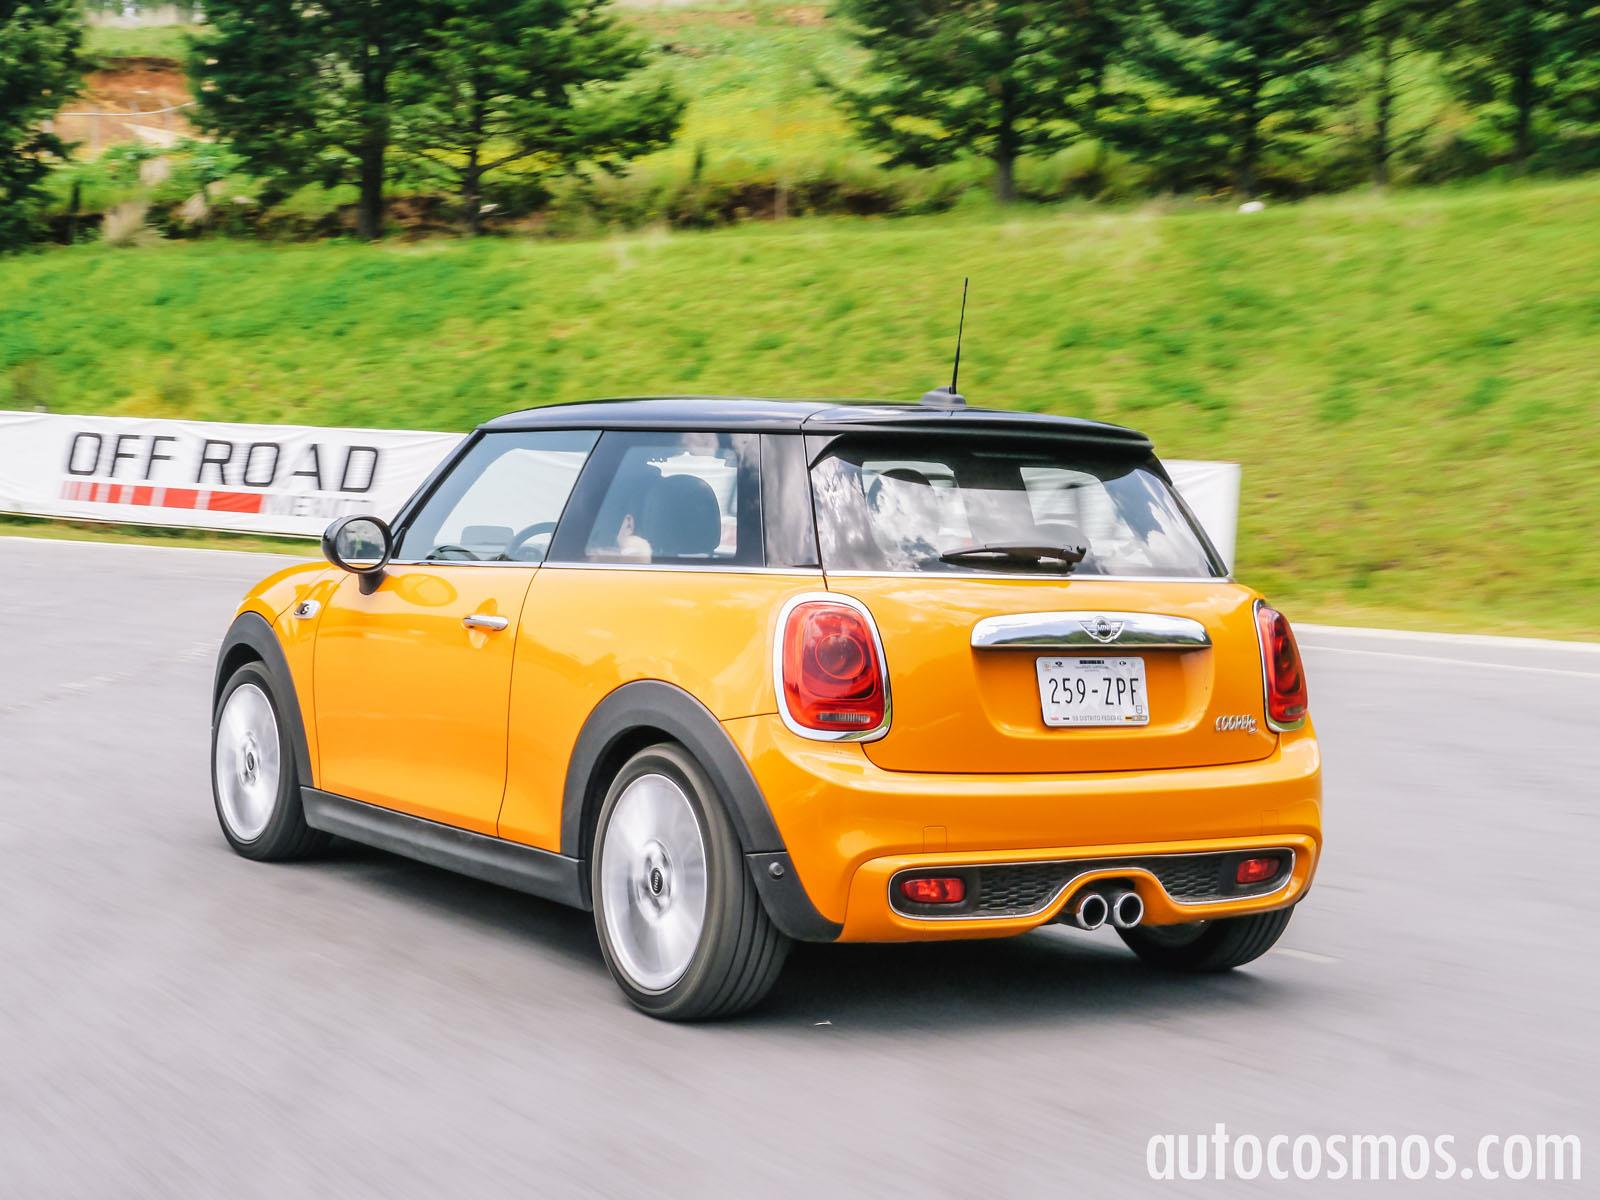 2015 mini cooper s vs vw golf 1 8 autos post. Black Bedroom Furniture Sets. Home Design Ideas